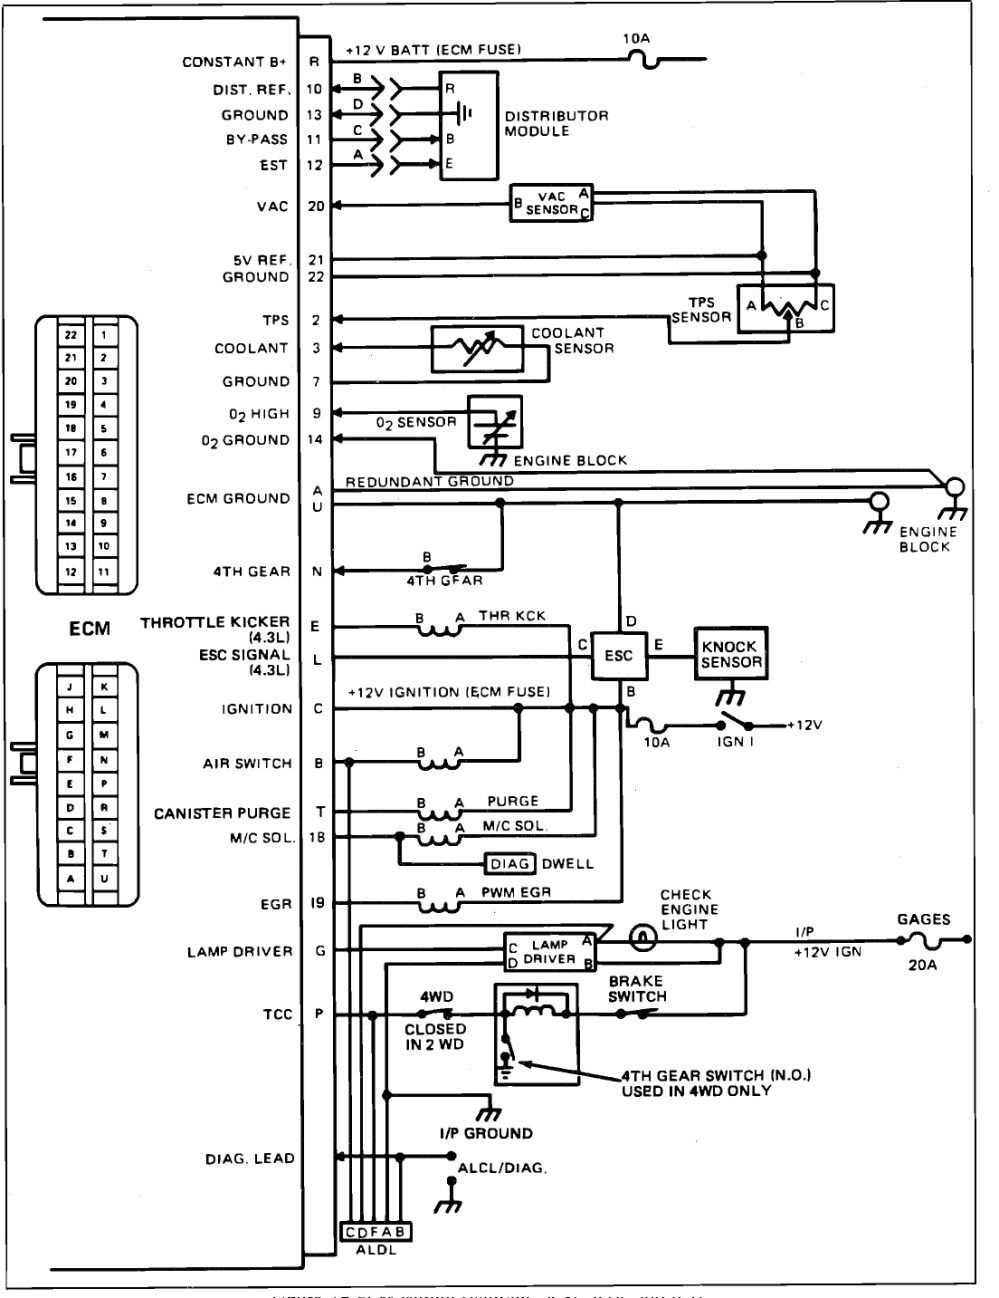 medium resolution of 1967 chevy van wiring diagram wiring diagram third level rh 8 2 11 jacobwinterstein com 1966 chevrolet van 1966 chevrolet step van